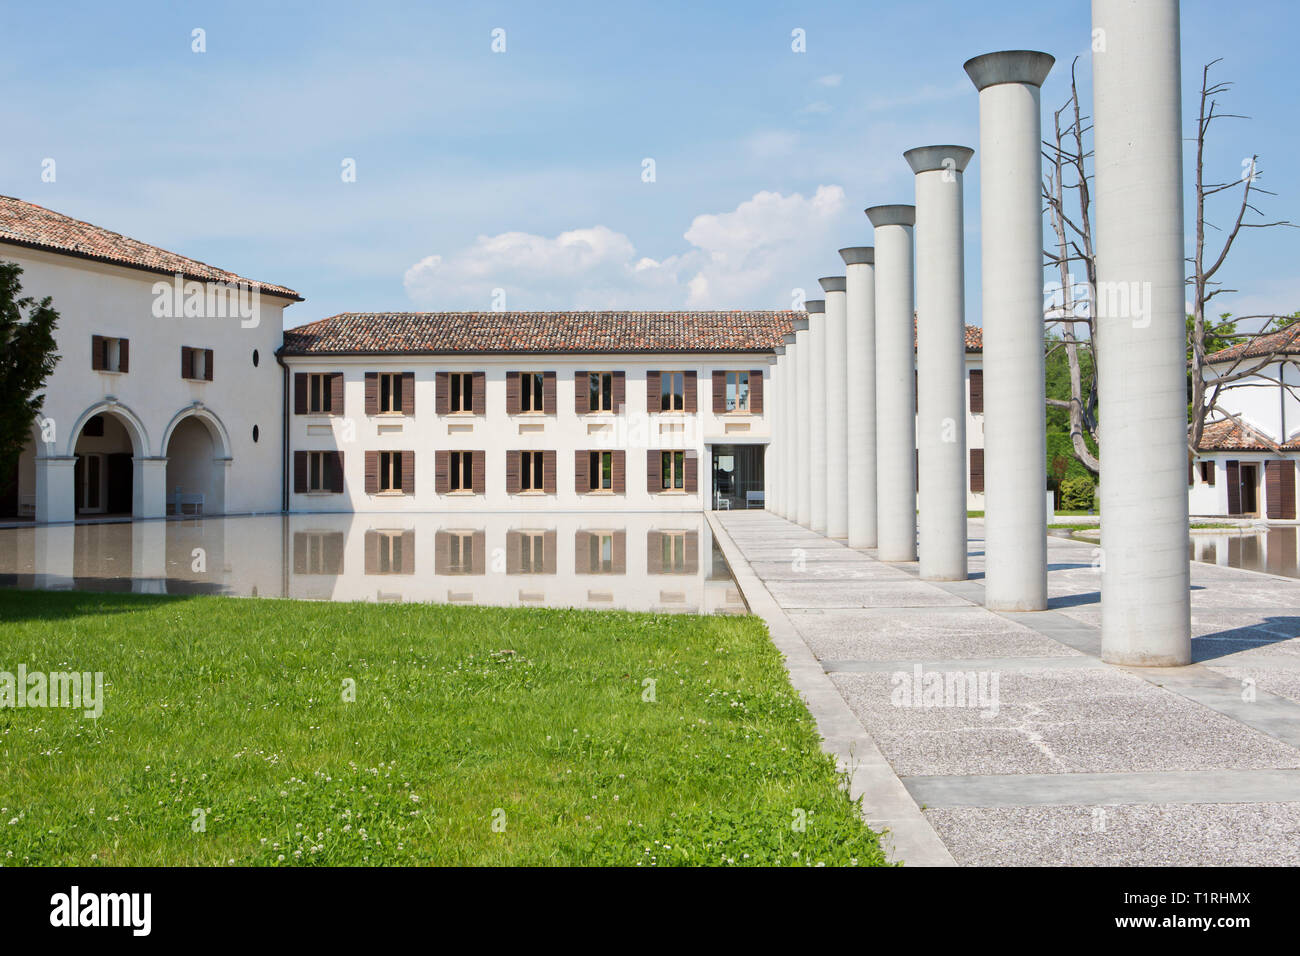 Fabrica, cultural center in italy - Stock Image